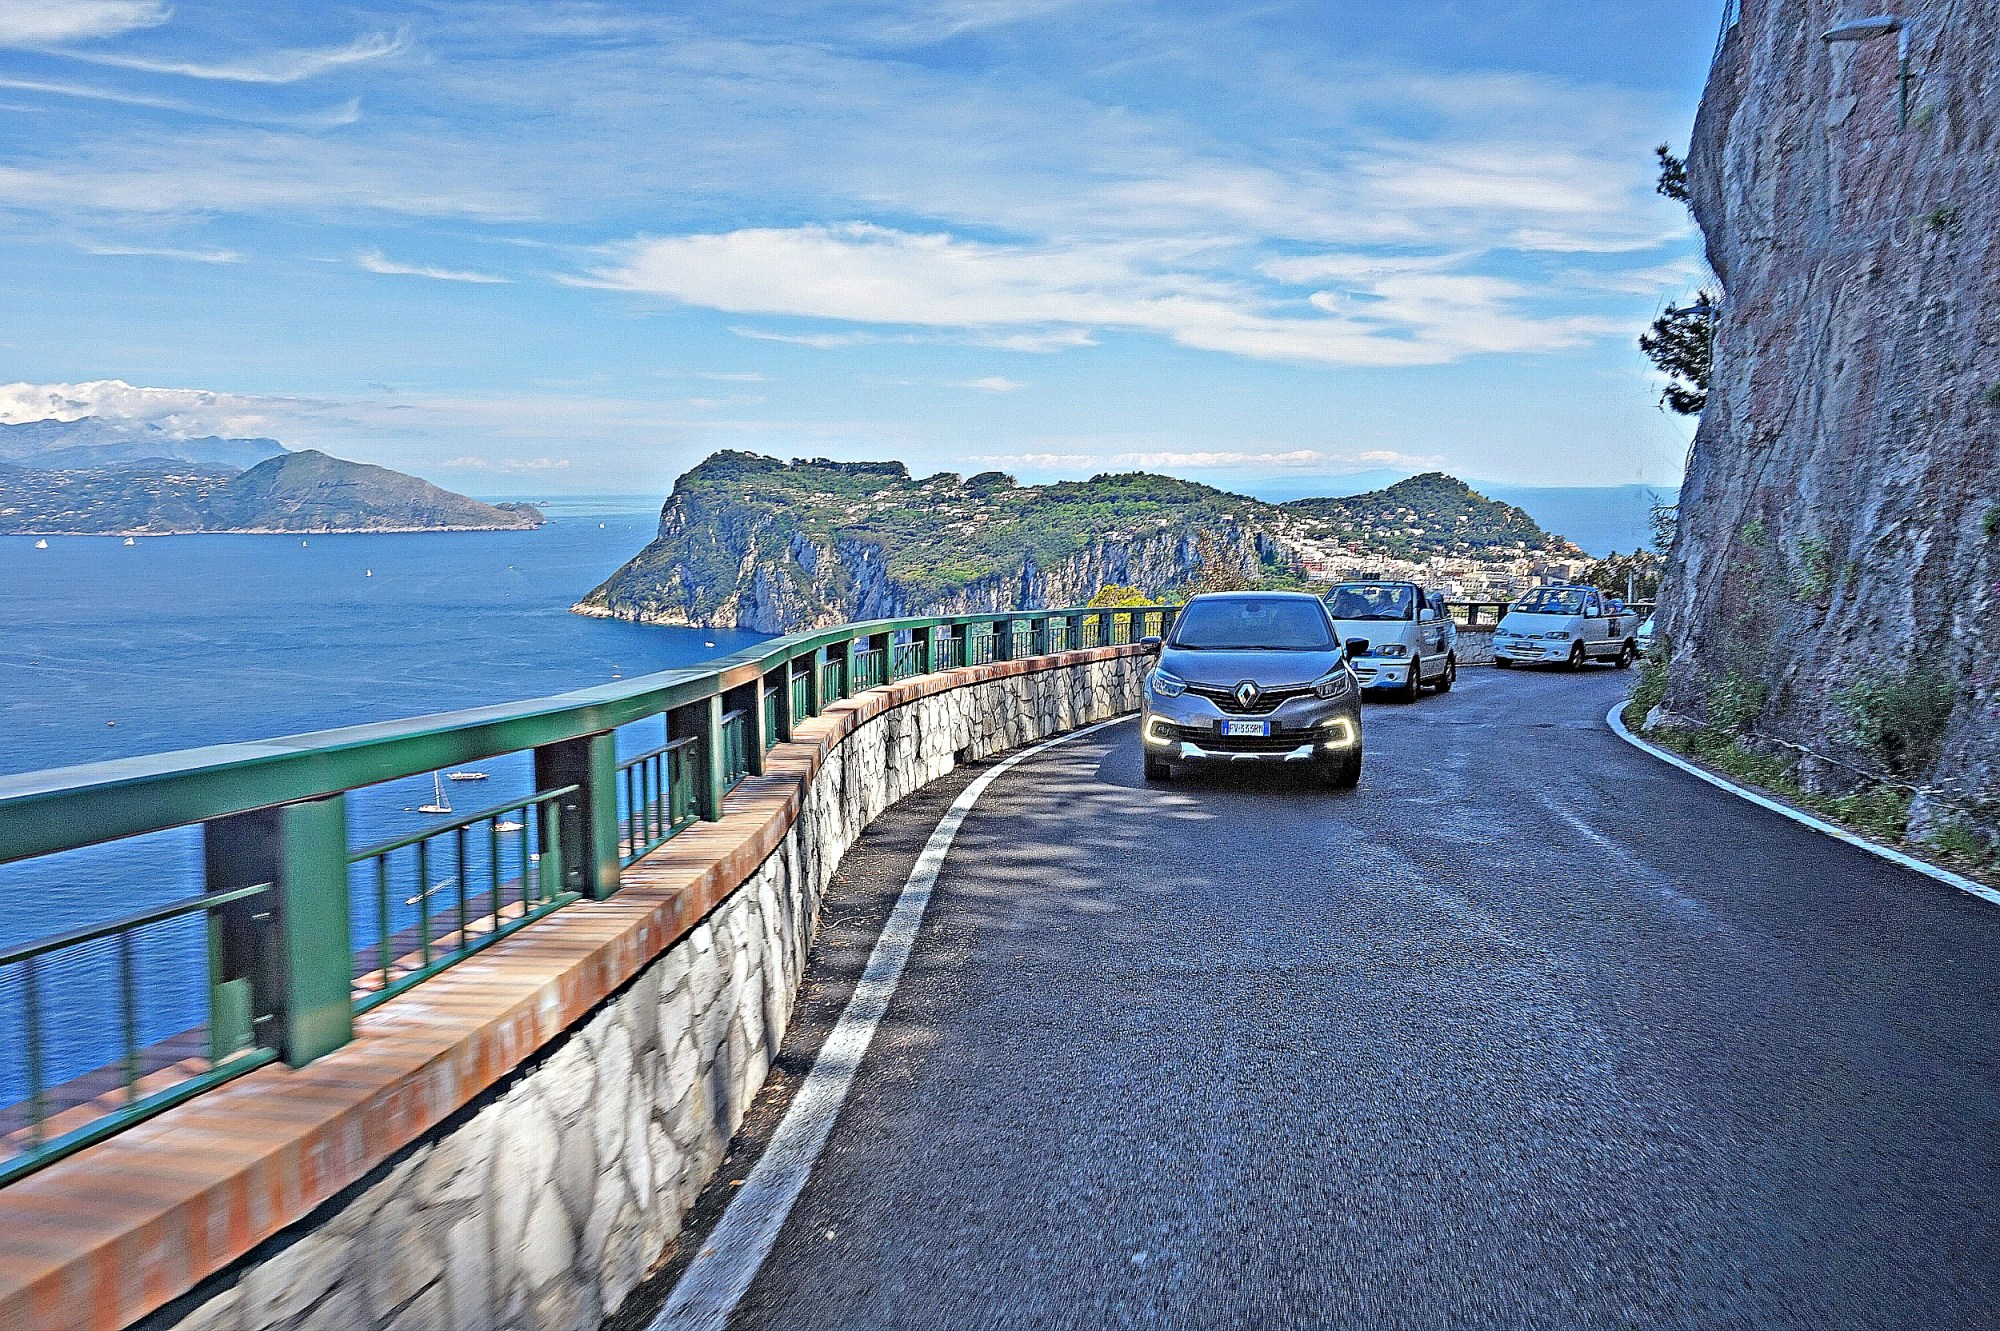 Drive from Capri to Anacapri.